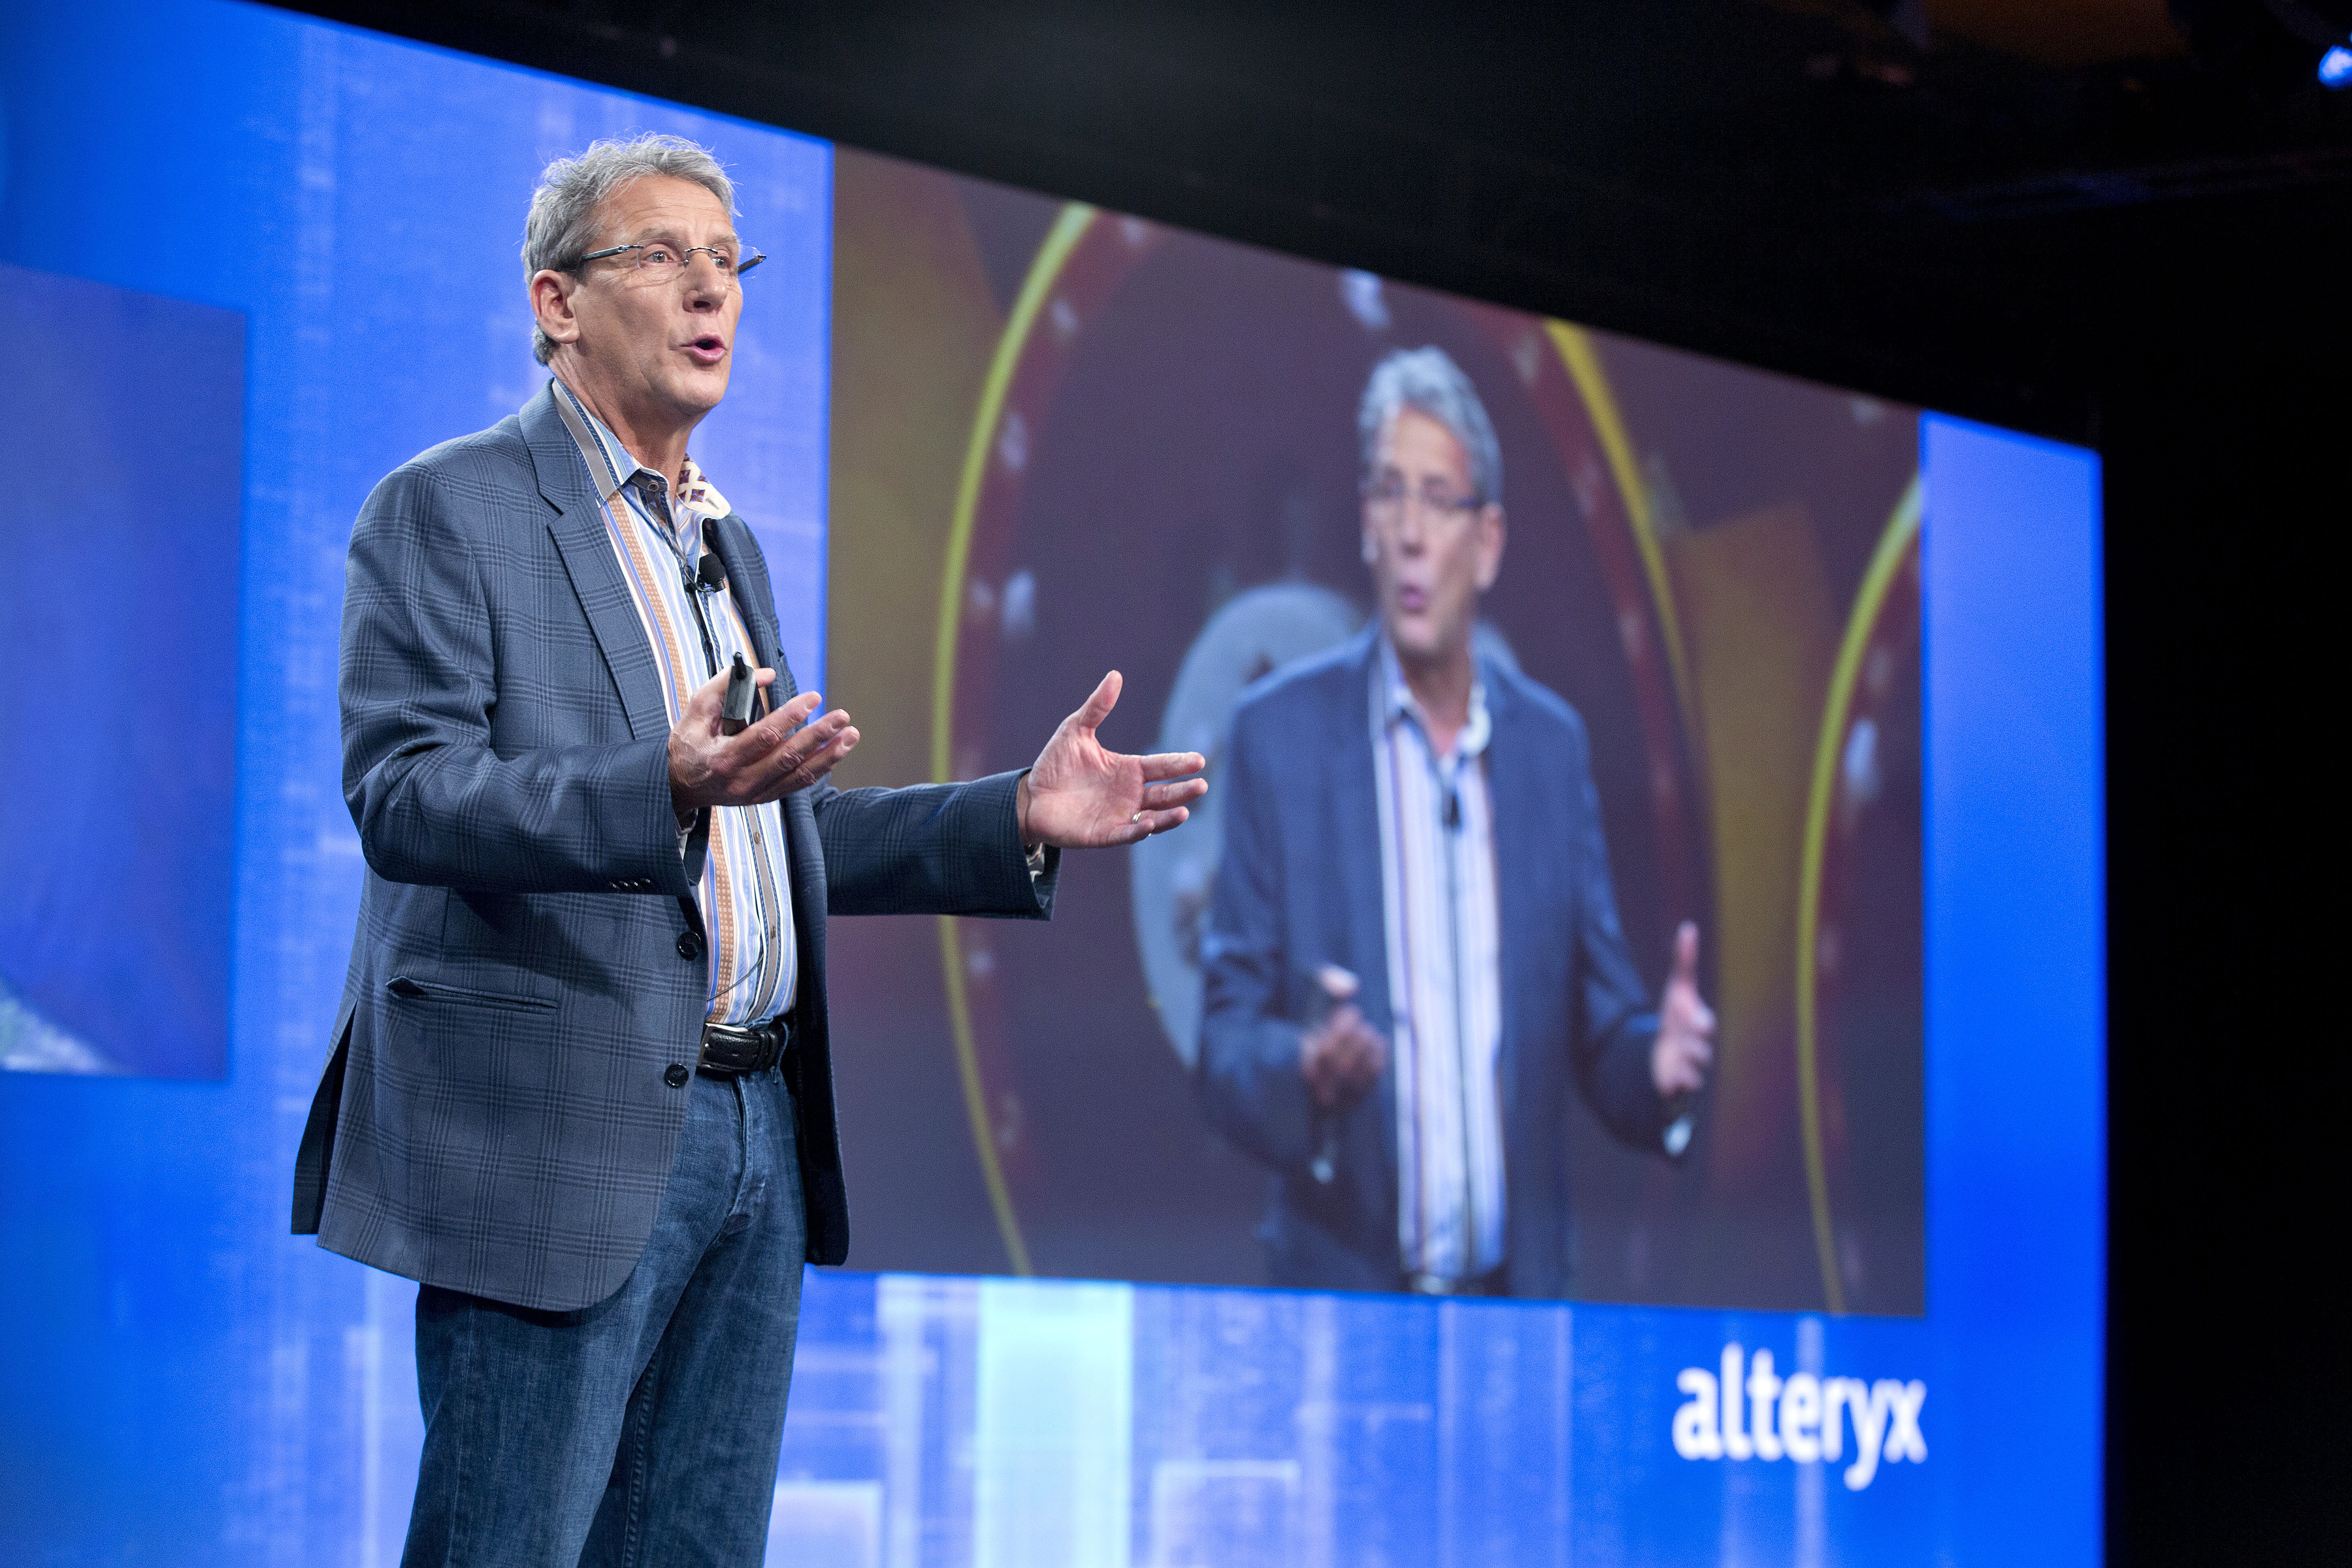 Alteryx chairman and CEO Dean Stoecker addresses the company's customer conference in October 2015.